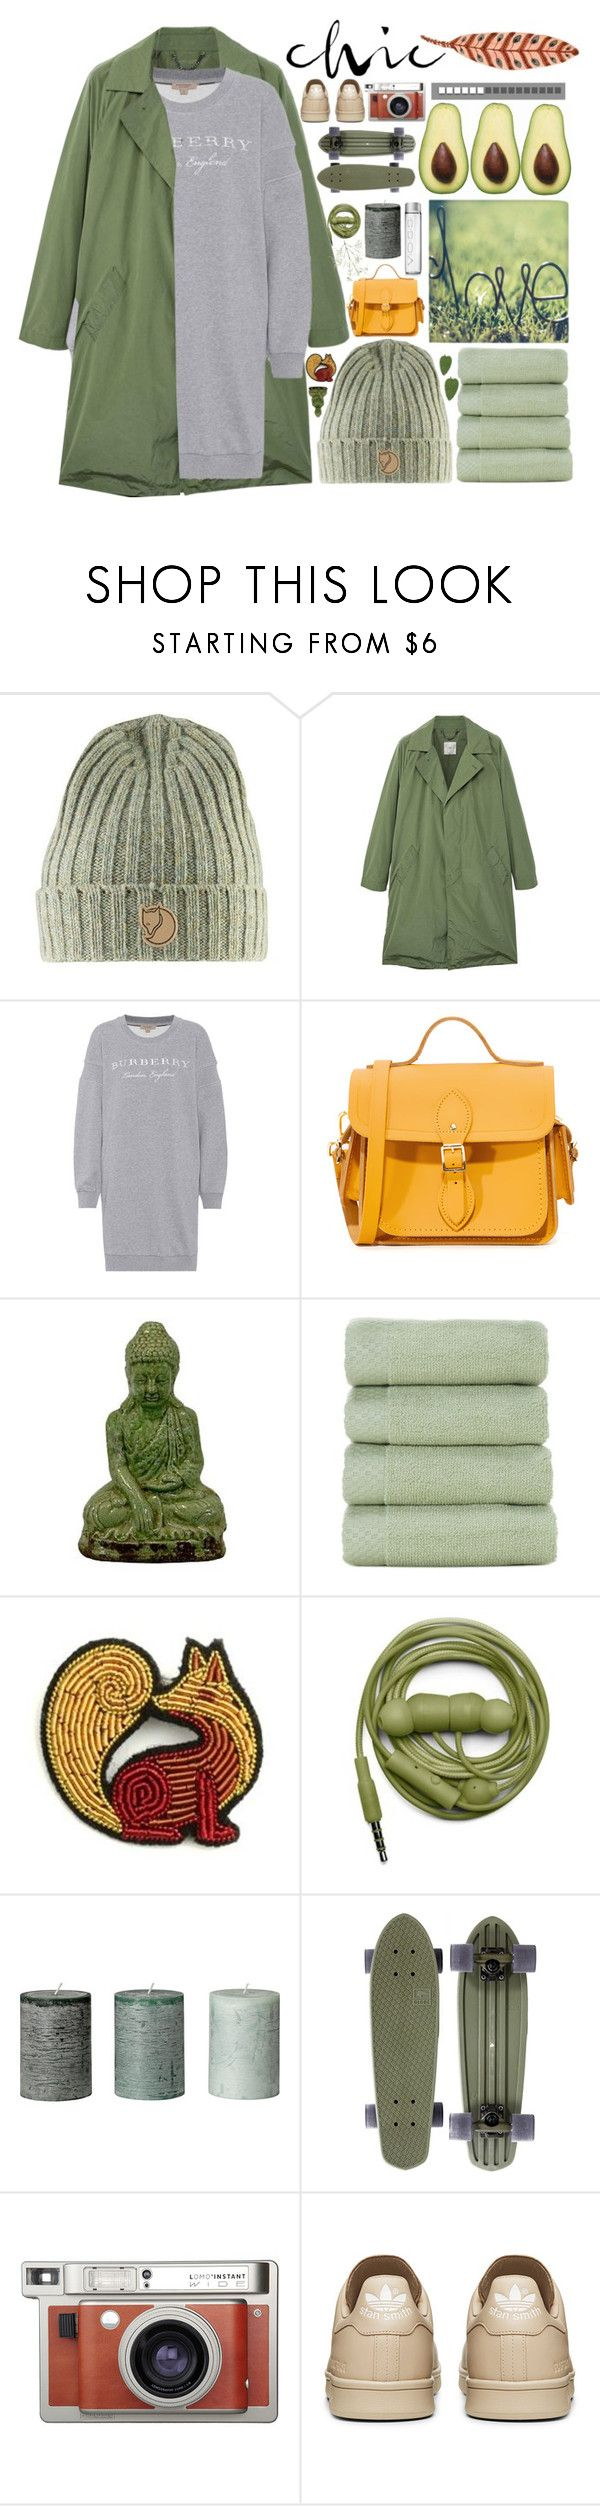 """""""/.Hey grey./"""" by semashamrr ❤ liked on Polyvore featuring Fjällräven, MANGO, Burberry, The Cambridge Satchel Company, Urban Trends Collection, Volte Face, Polaroid, Urbanears and Lomography"""